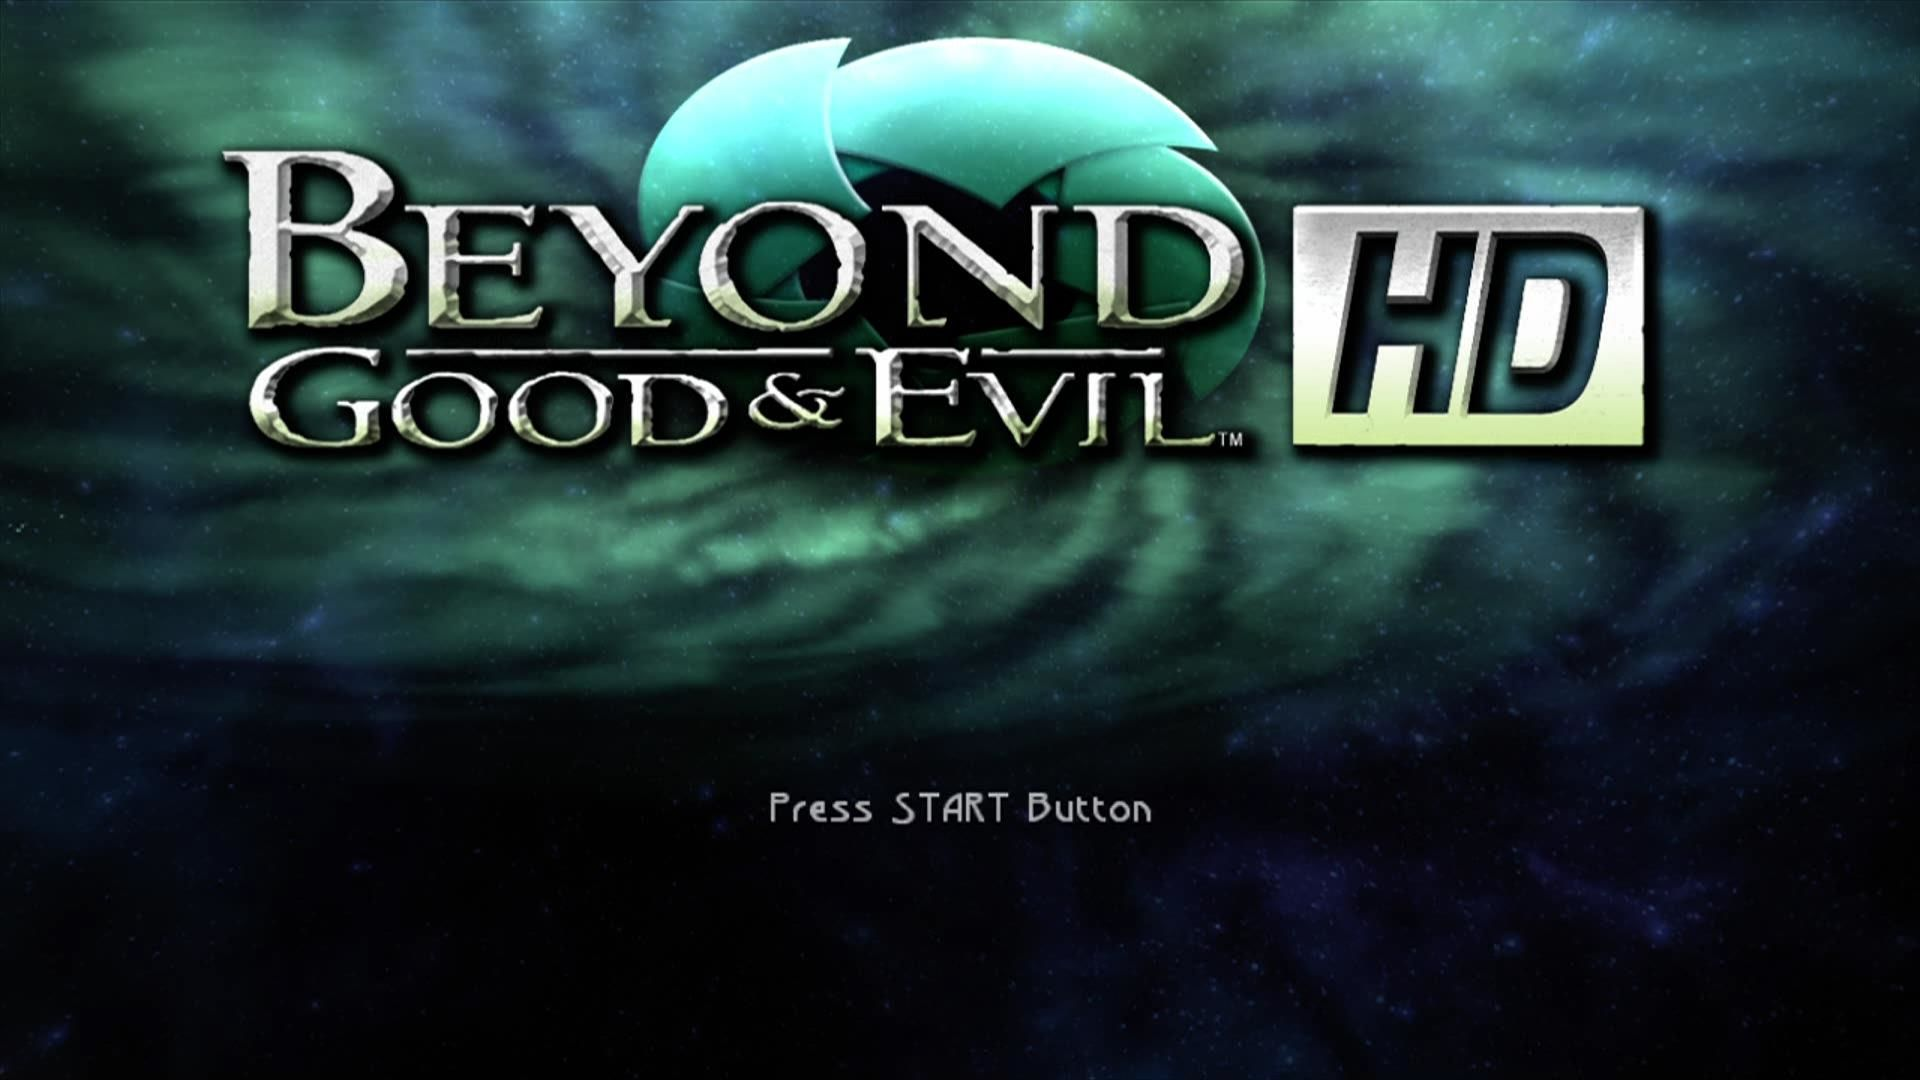 Beyond Good & Evil Xbox 360 Start screen